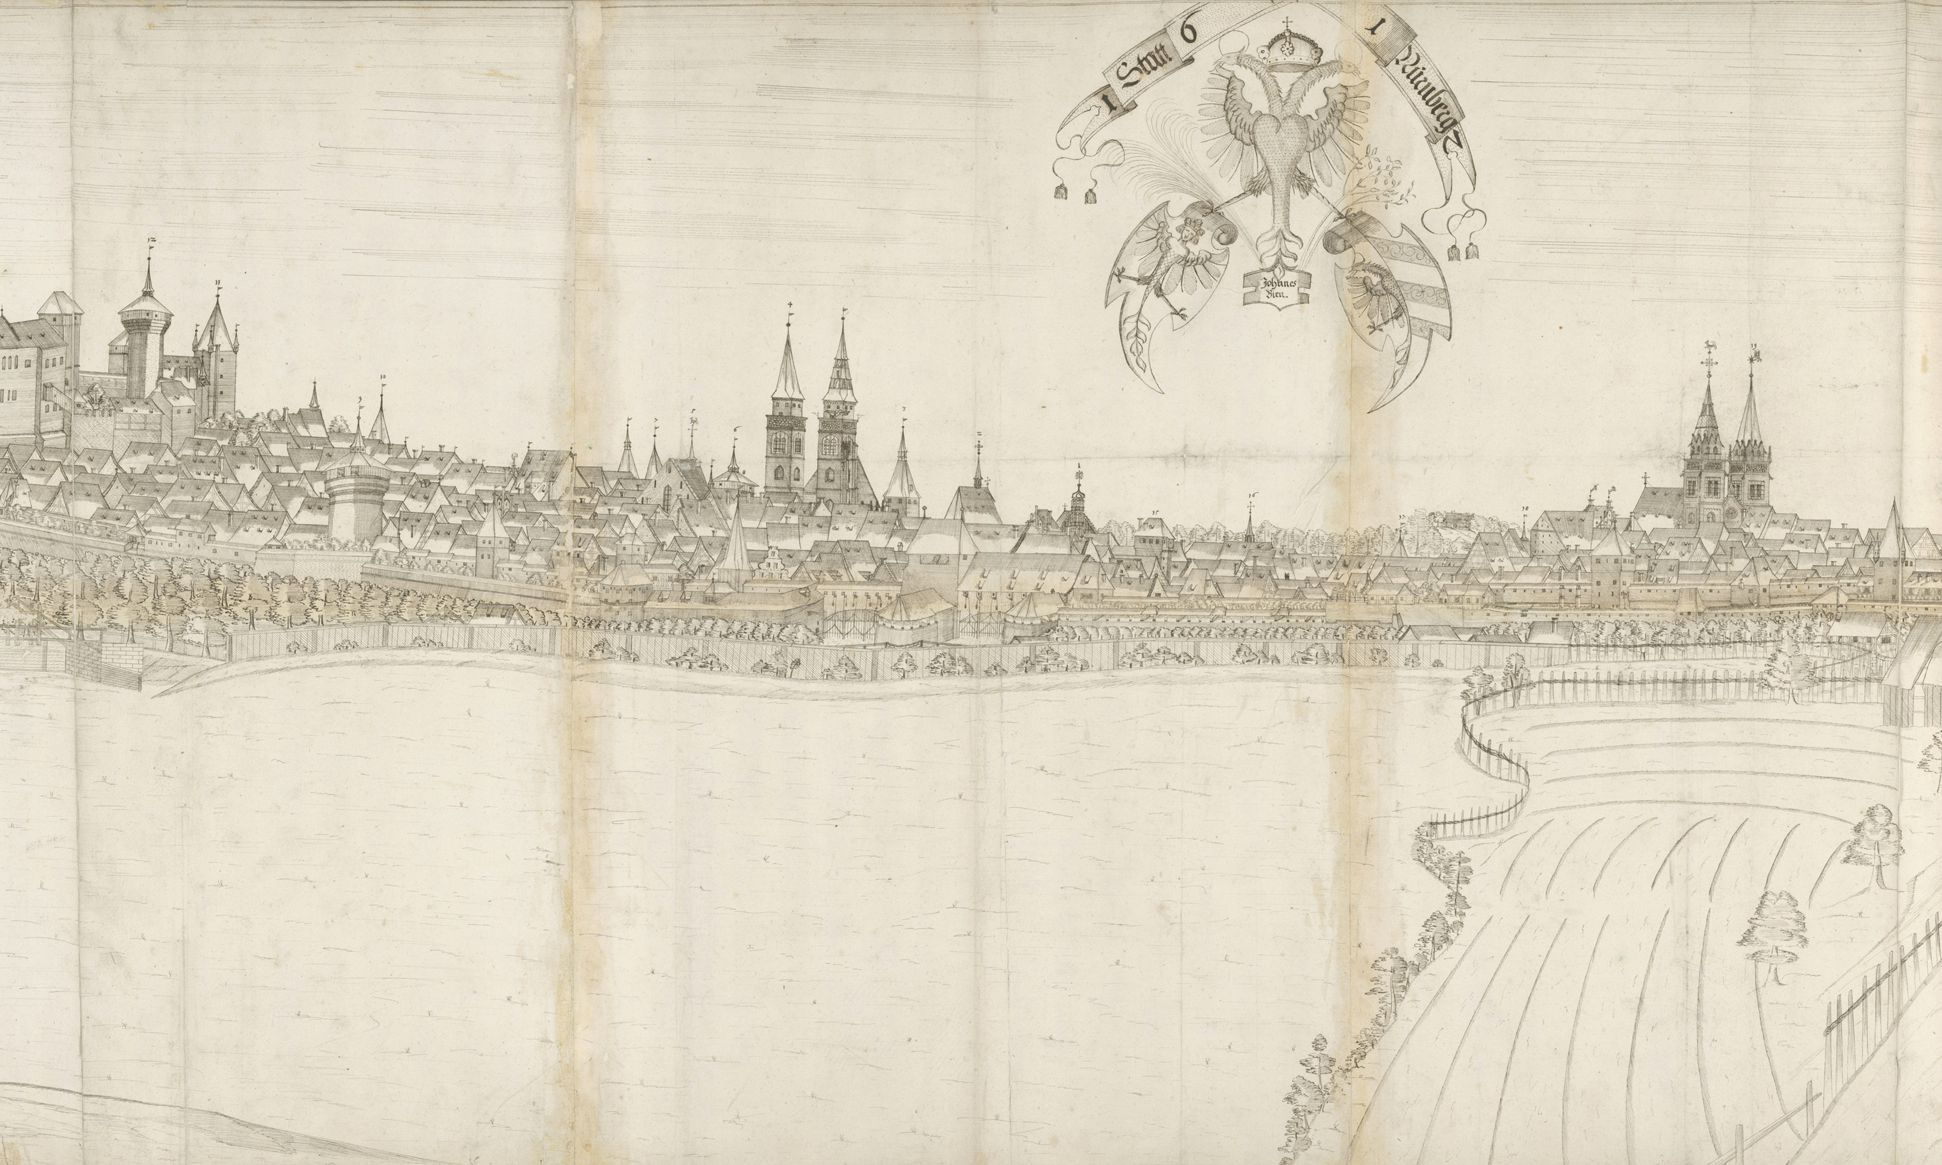 Panoramic view of the City of Nuremberg as seen from the west Central third (from the Great Hall to the tower Red Z), placed in the center the triple coat of arms